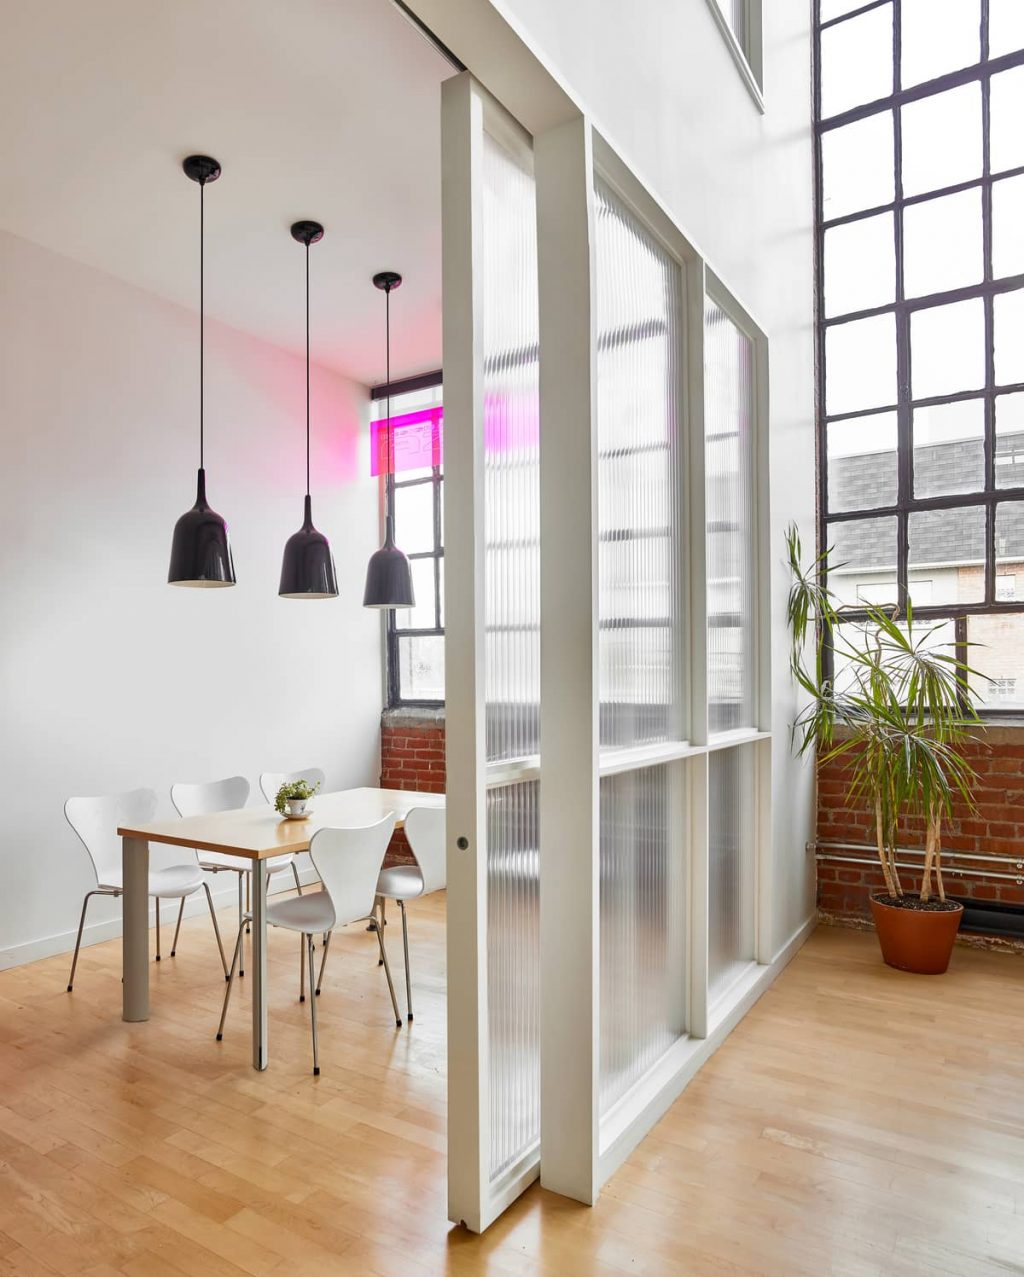 6 Advantages of Using Partition Walls in Your Home and Office